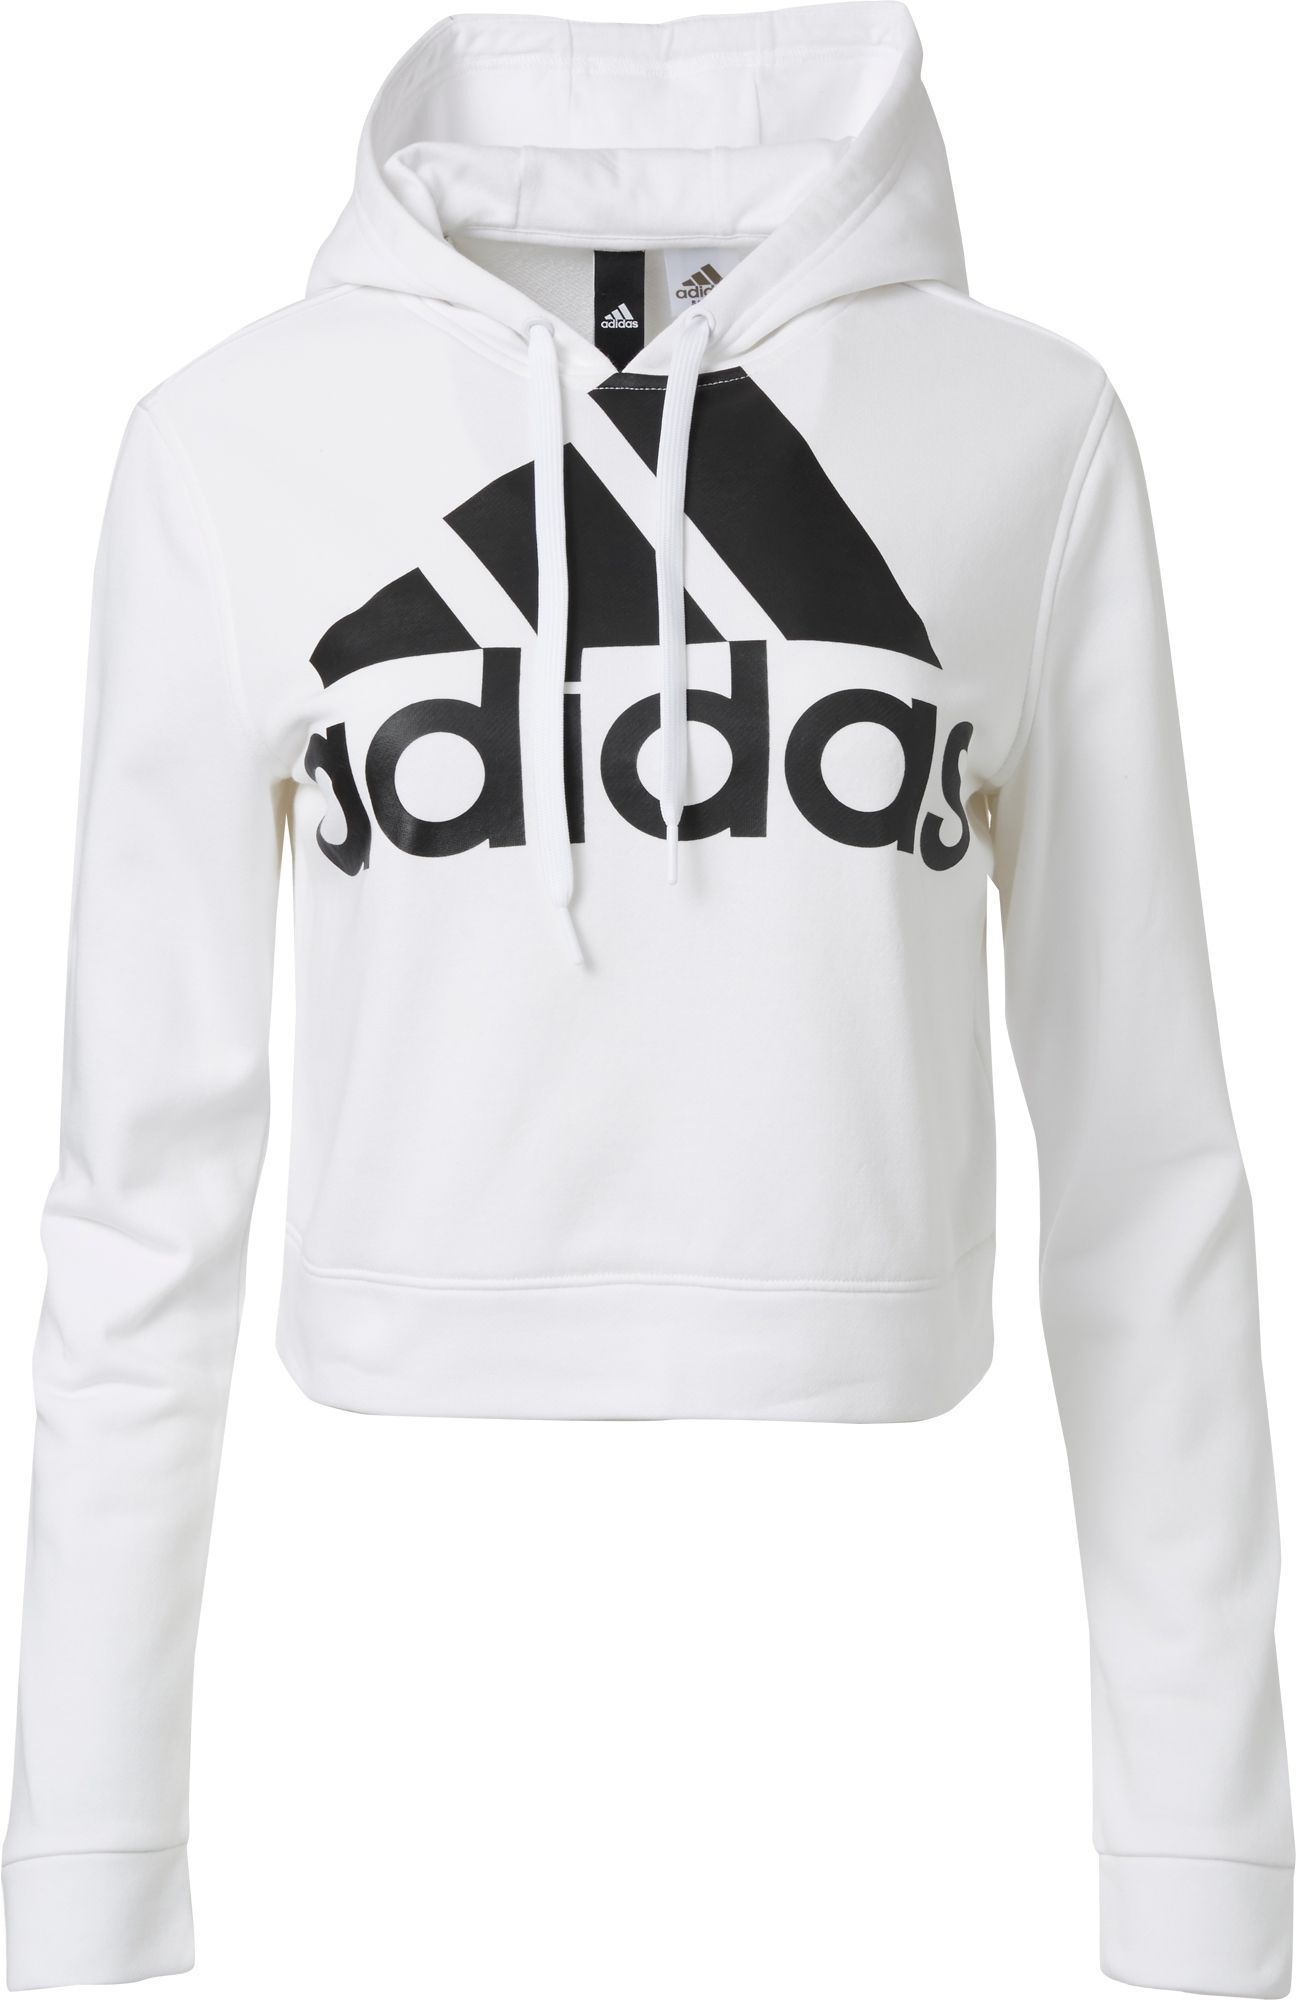 Hot Sale: Adidas Women's Cropped French Terry Hoodie, Size